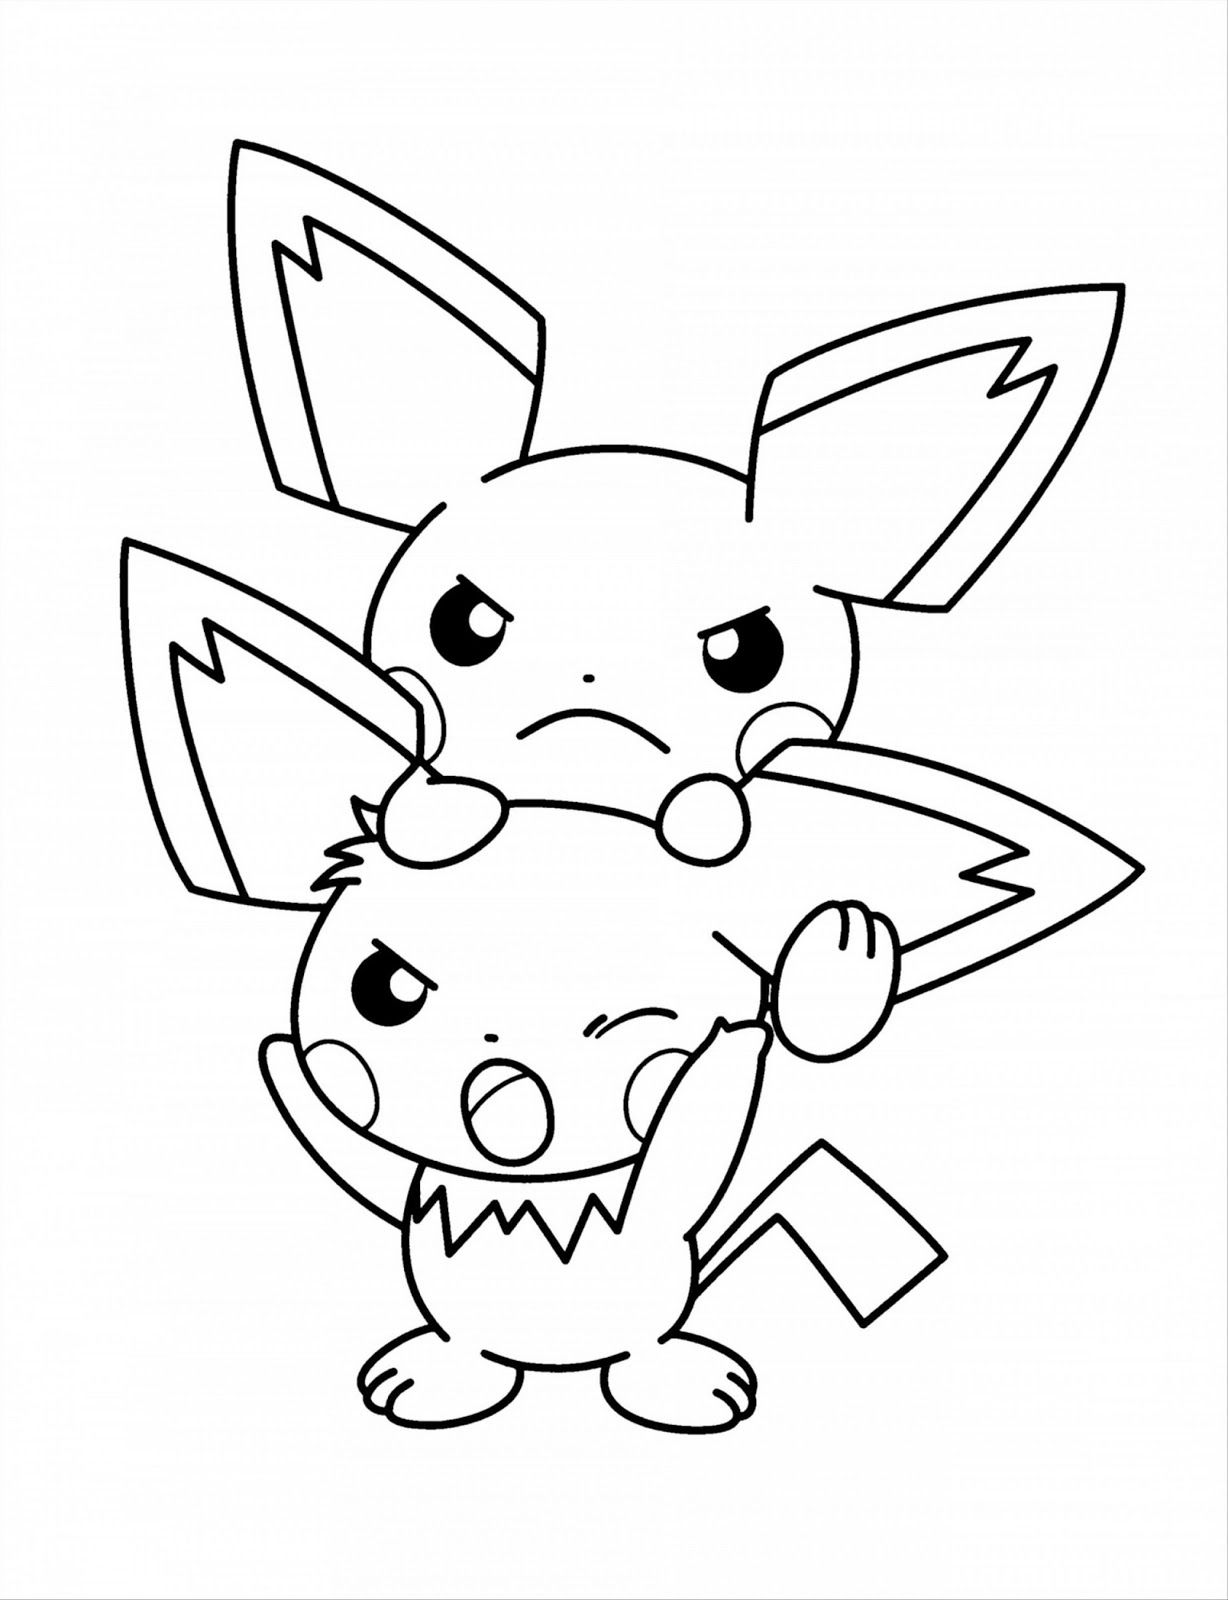 super cute baby pokemon coloring pages pichu in 2020 pokemon coloring pages pikachu coloring page pokemon coloring sheets super cute baby pokemon coloring pages